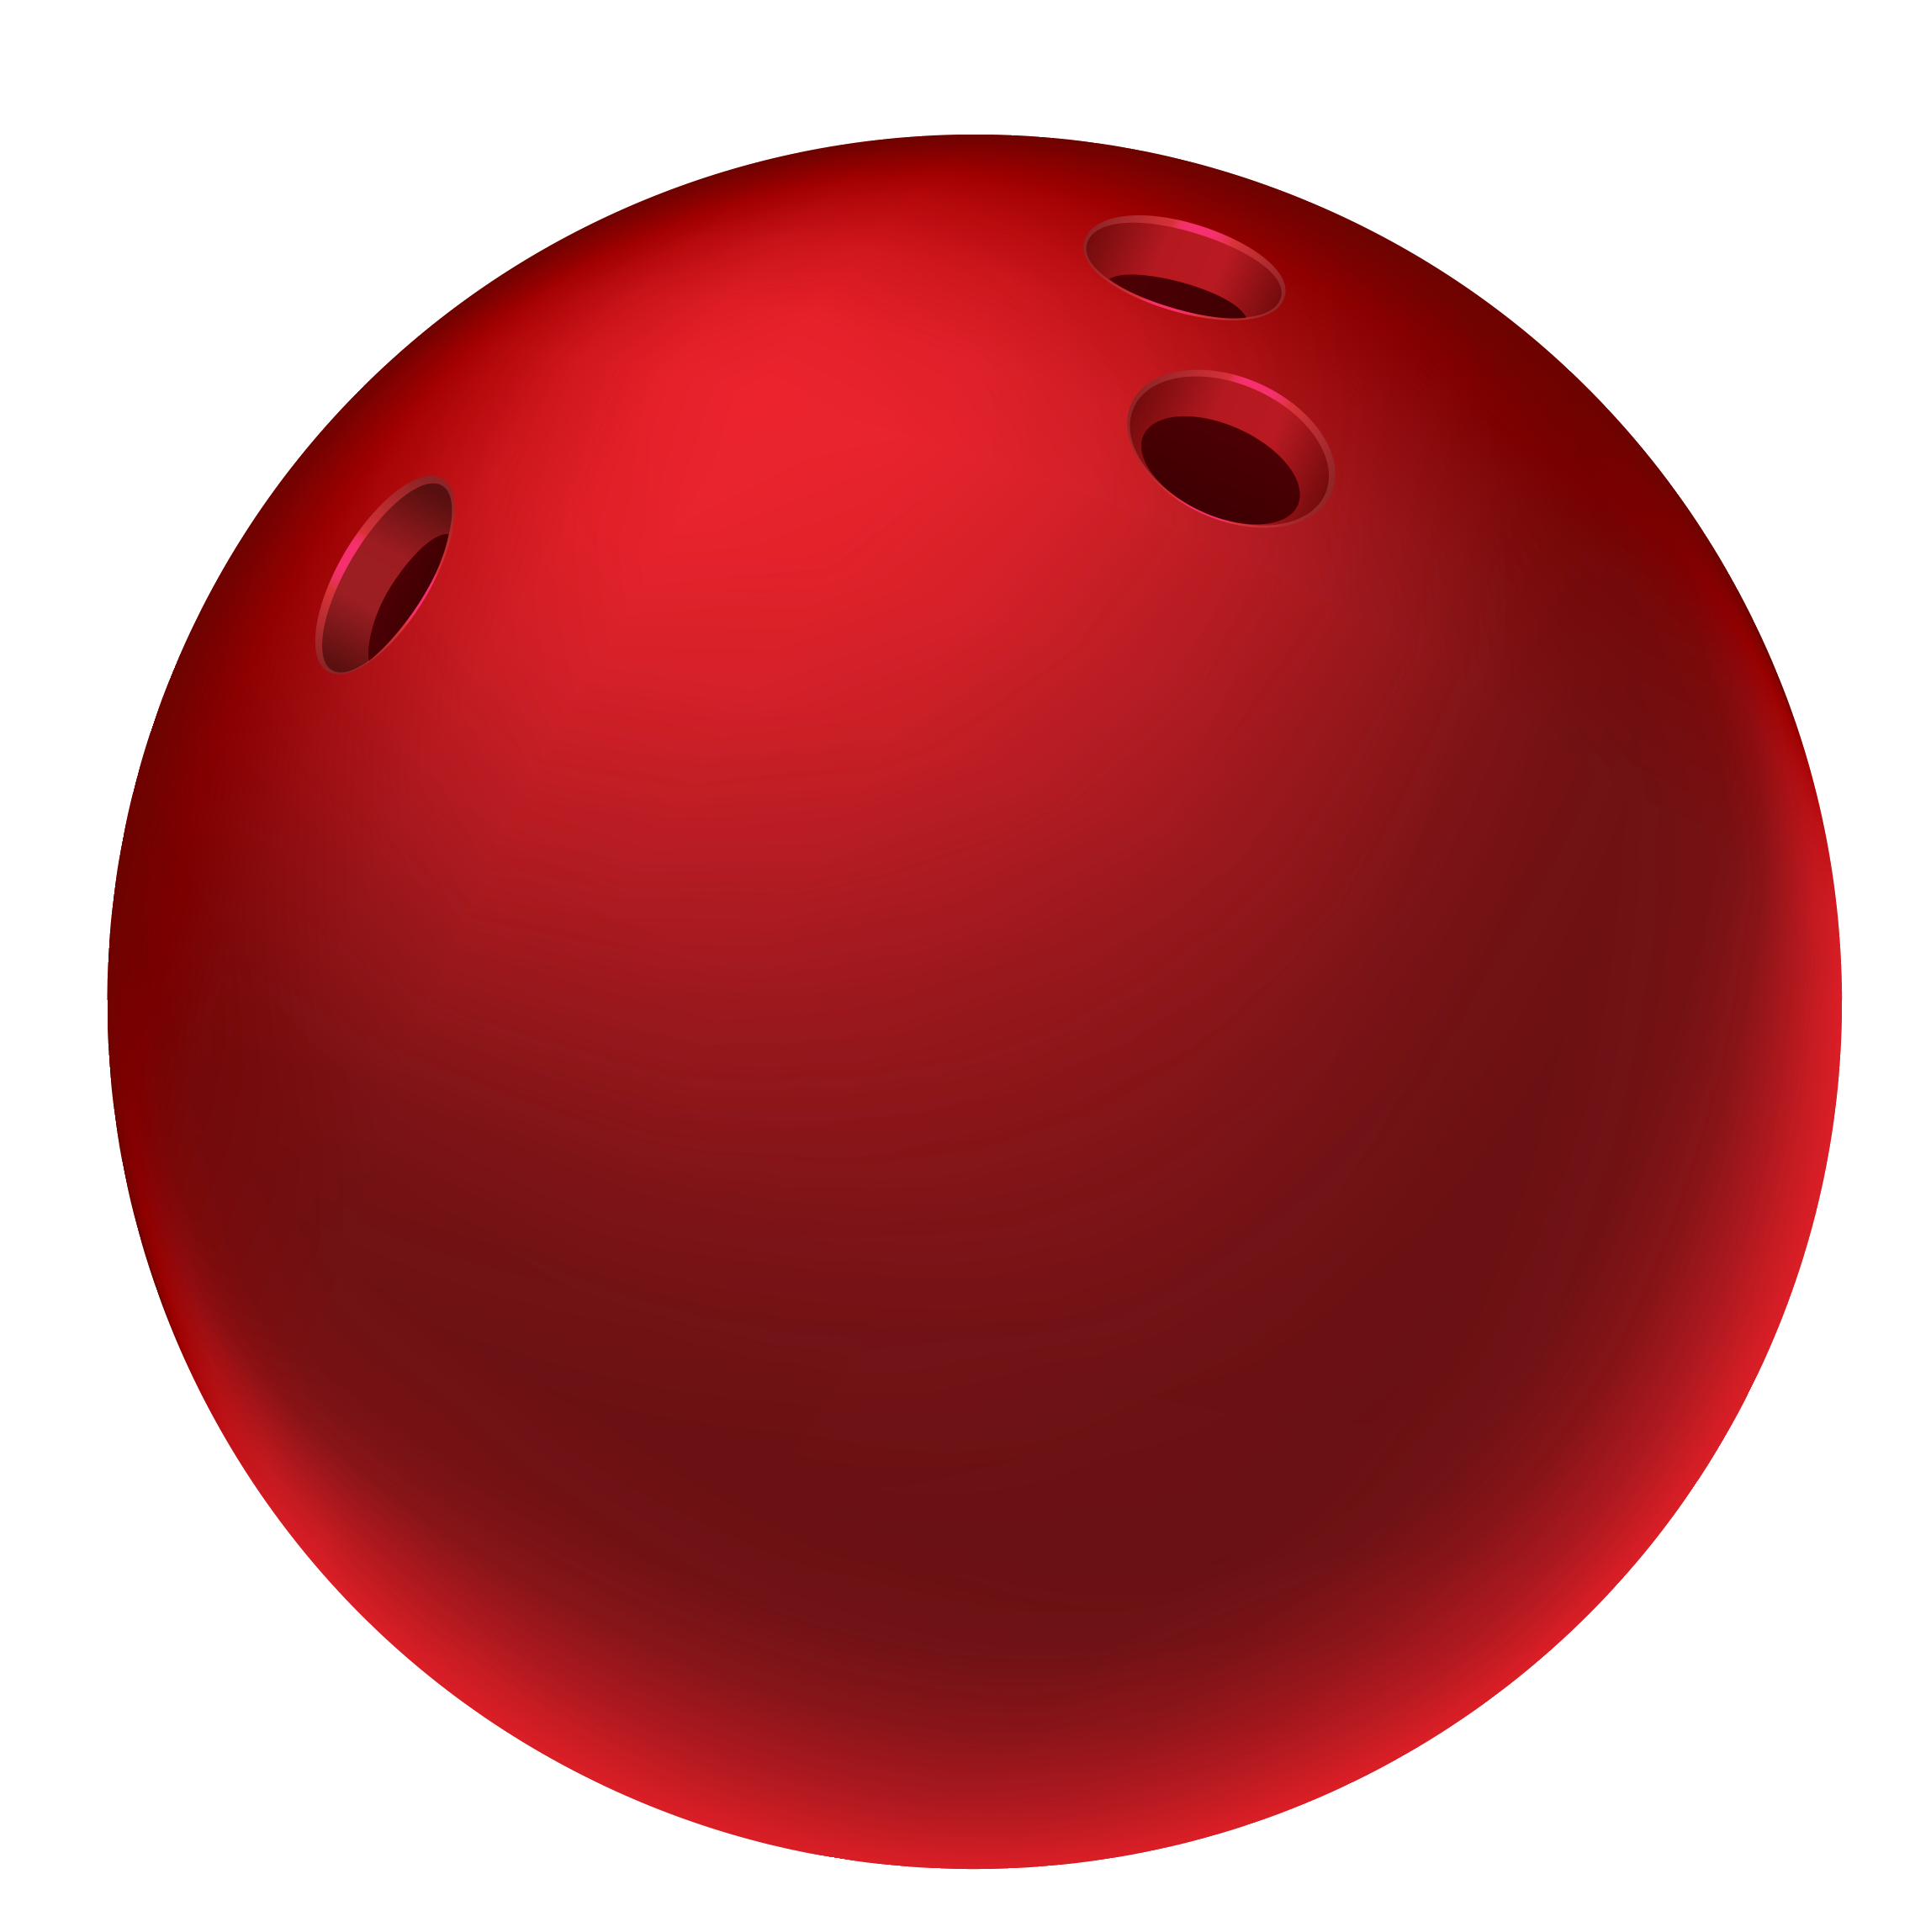 Bowling ball clipart png. Red picture gallery yopriceville